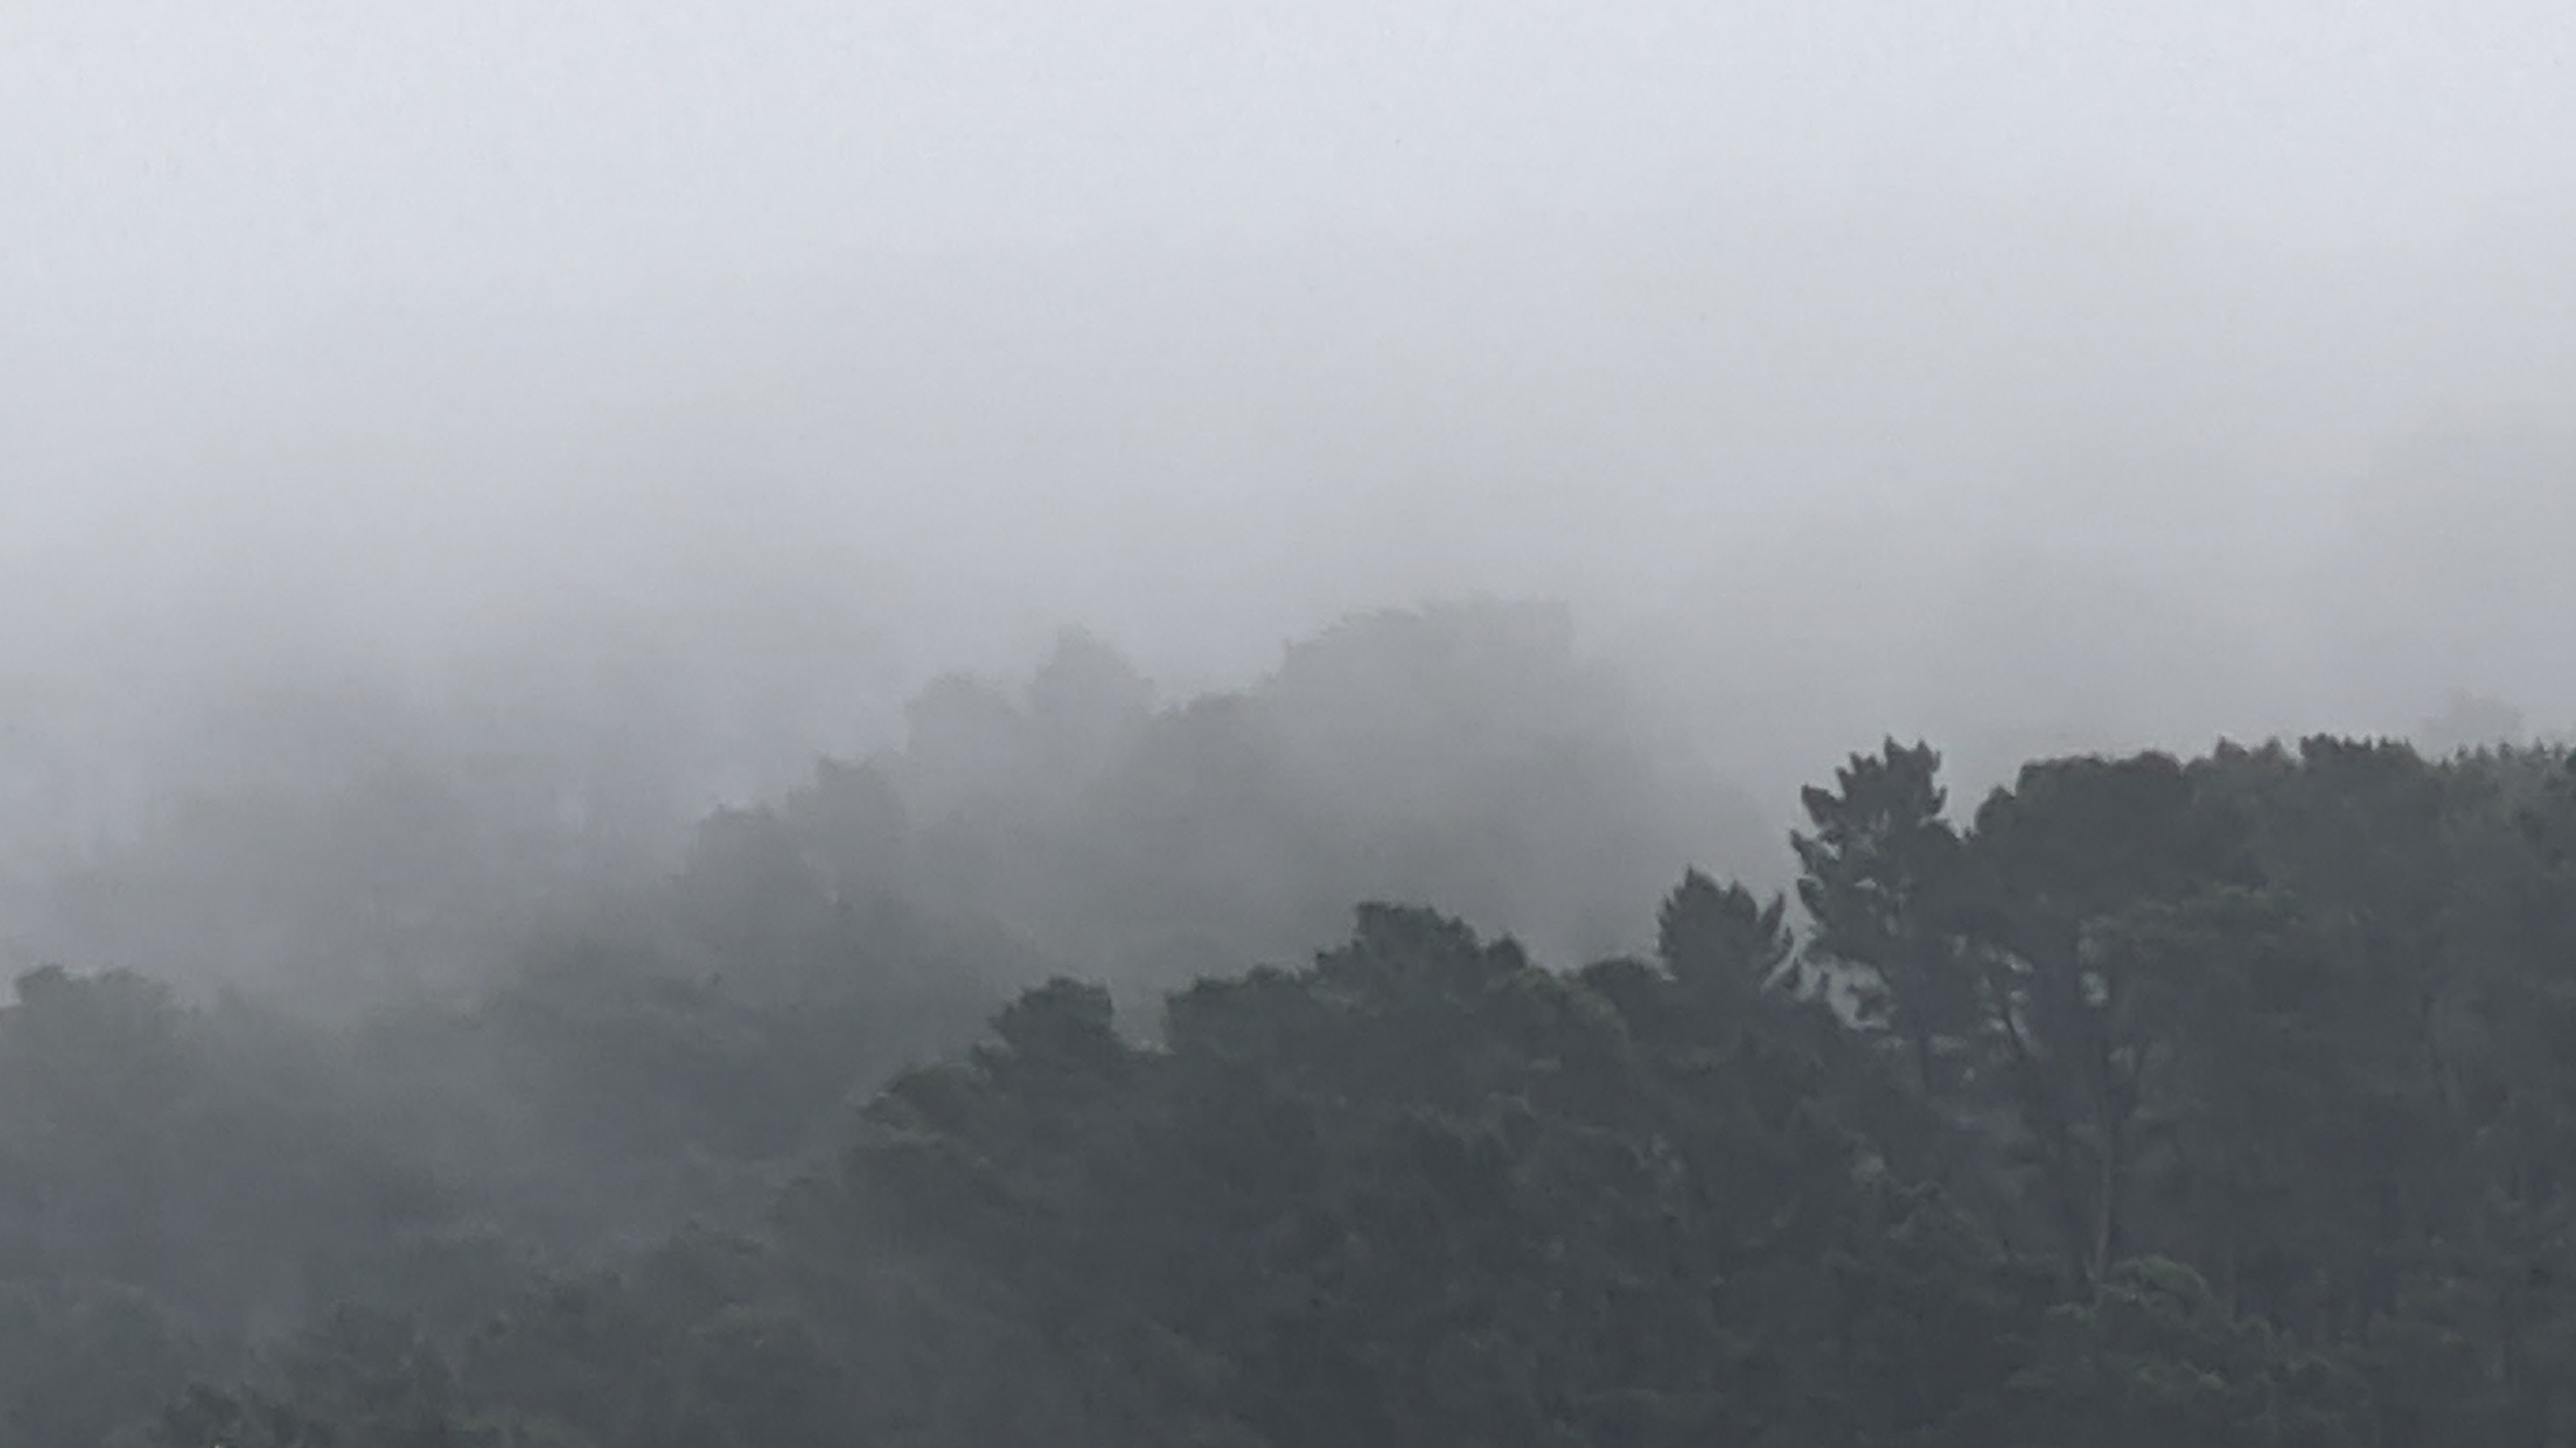 Misty Tinakori Hills in Wellington (Aotearoa New Zealand)